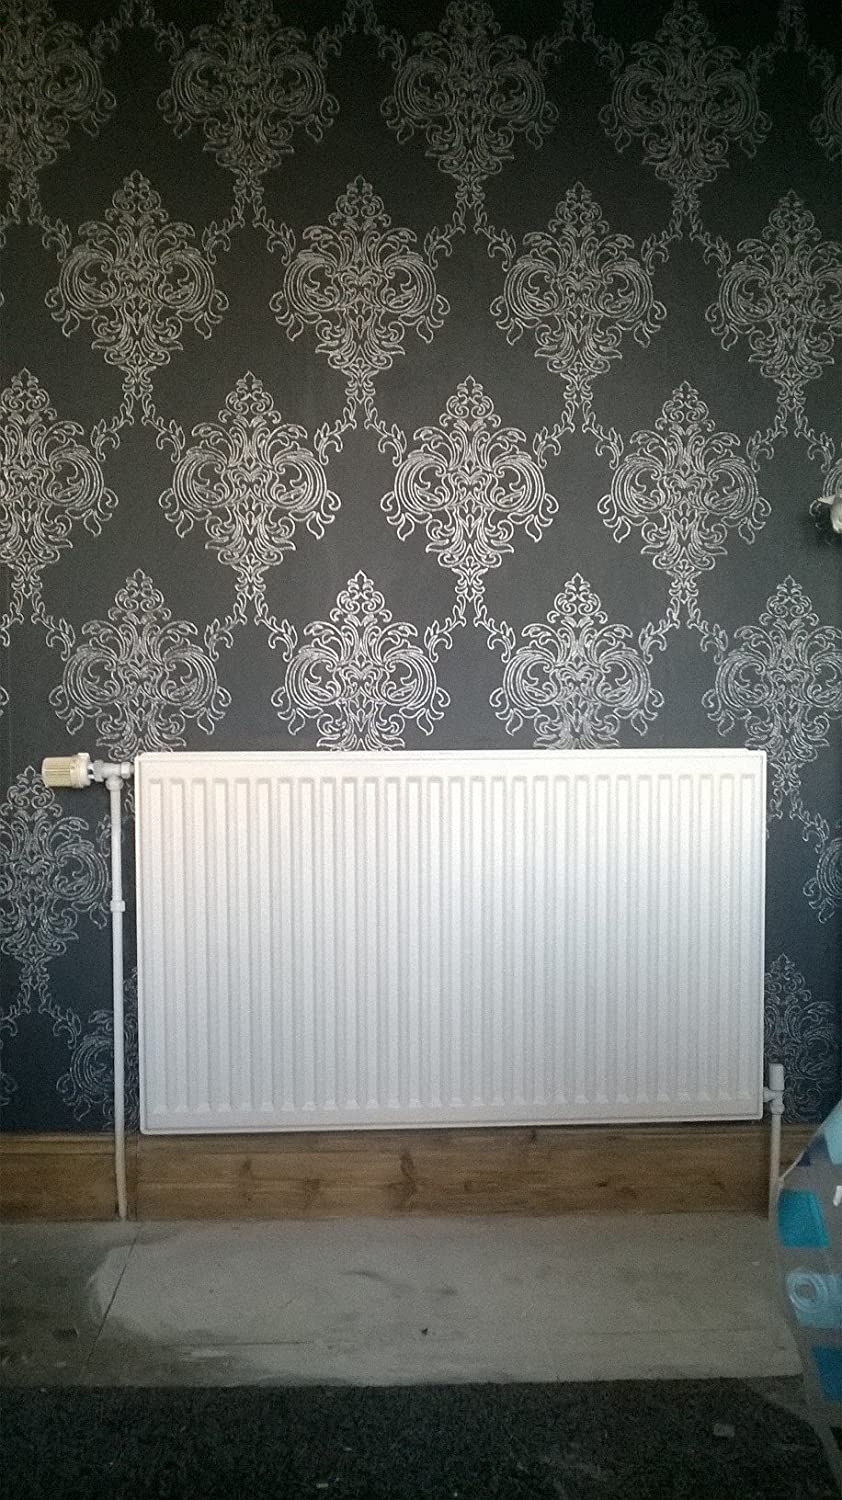 Radwraps Wallpaper Magnetic Radiator Cover Amazoncouk DIY Tools